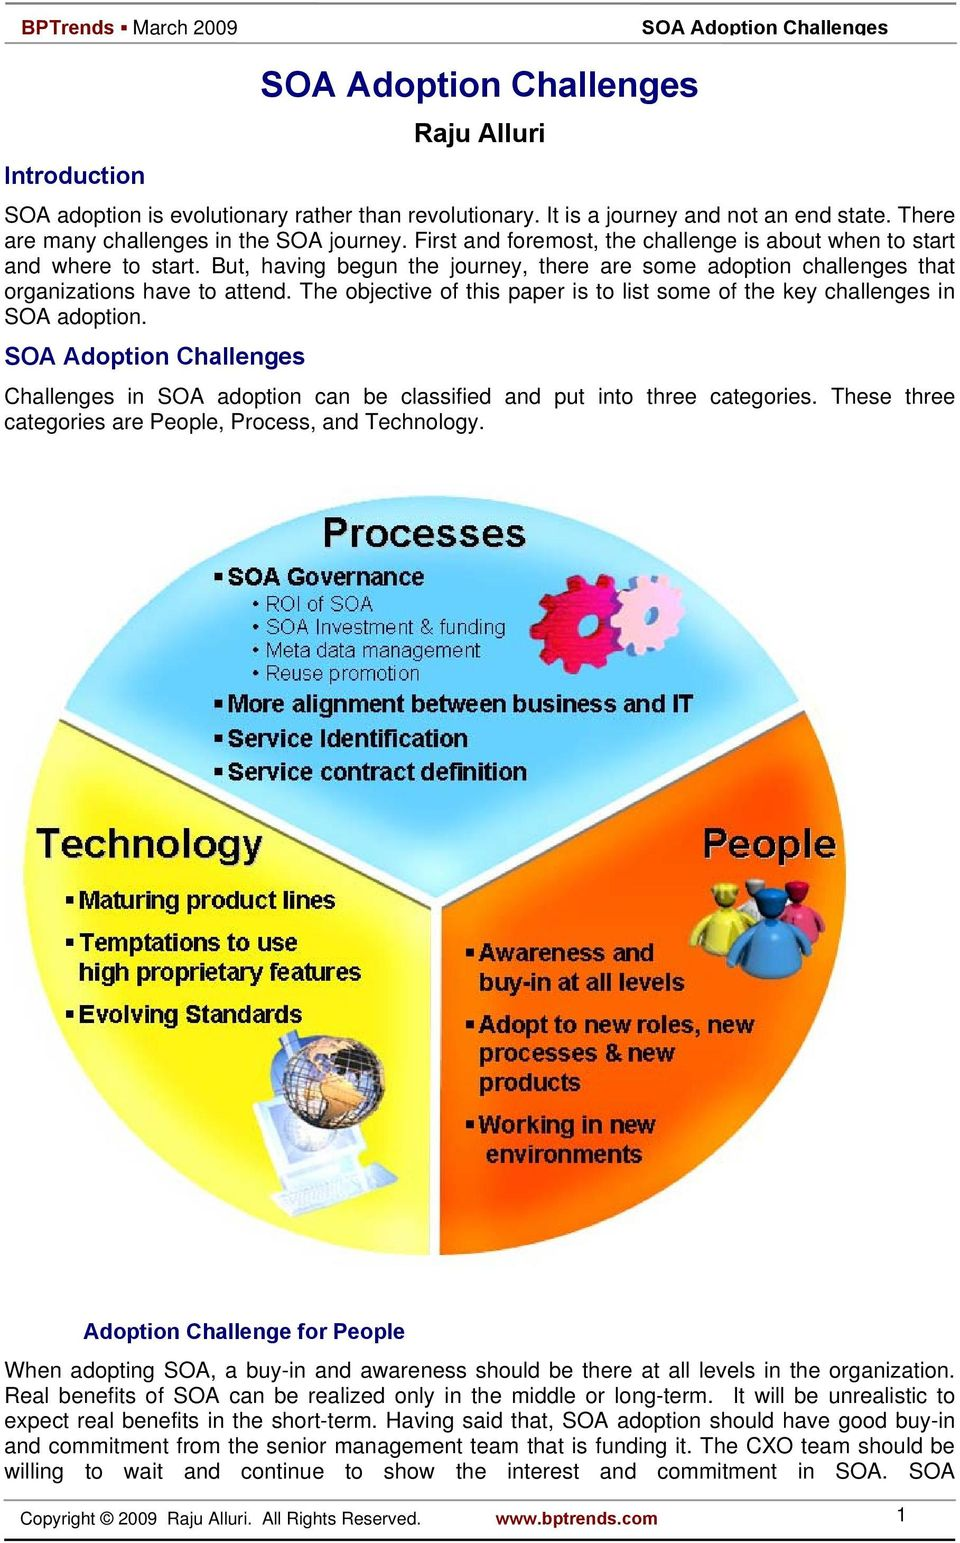 The objective of this paper is to list some of the key challenges in SOA adoption. Challenges in SOA adoption can be classified and put into three categories.